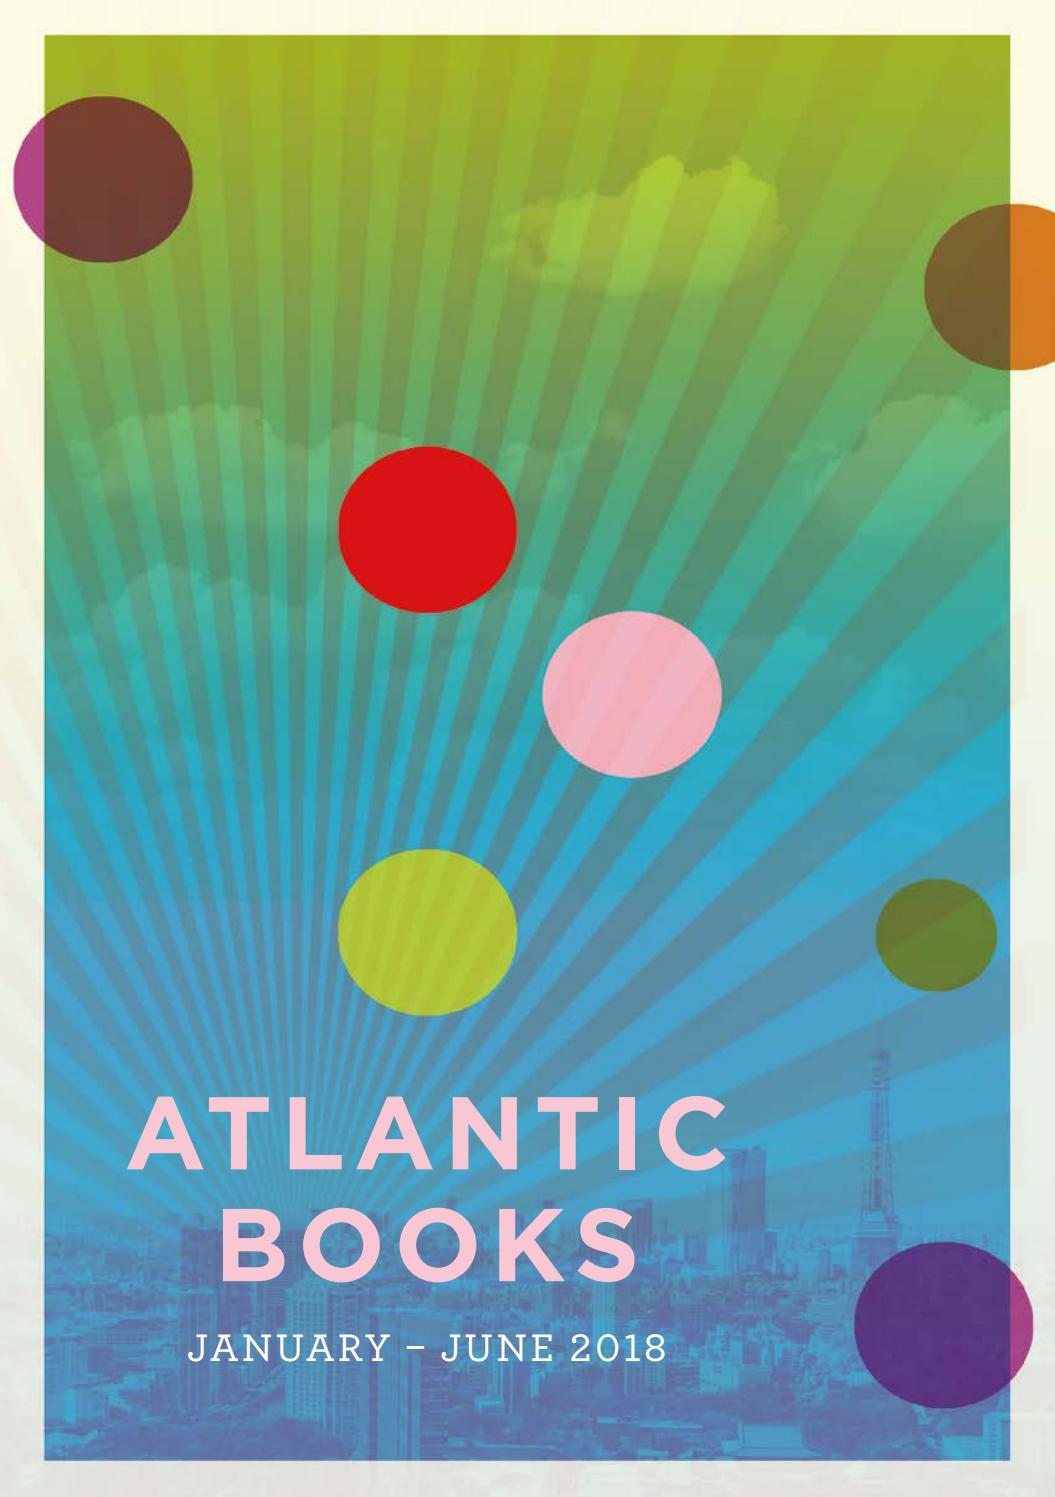 Atlantic books july december 2017 catalogue by atlantic books atlantic books july december 2017 catalogue by atlantic books issuu fandeluxe Image collections